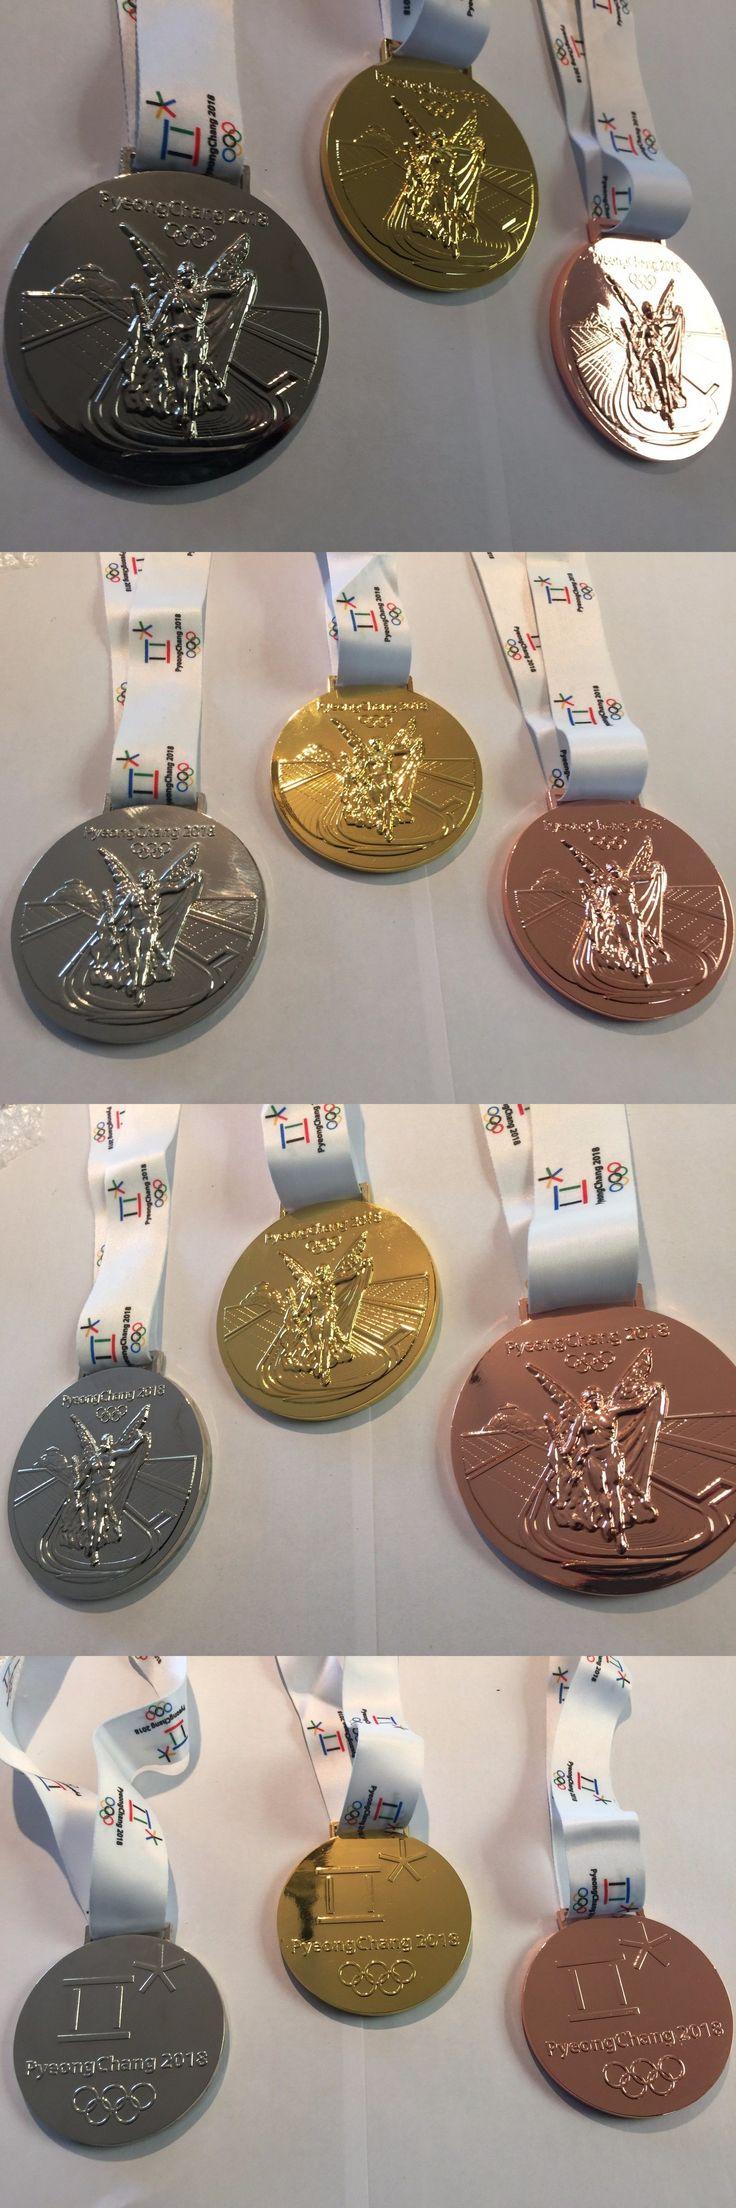 Olympics 27291: Set(3) 2018 Pyeongchang Olympic Souvenir Medals Gold Silver Bronze Korea! Usa! -> BUY IT NOW ONLY: $99.99 on eBay!